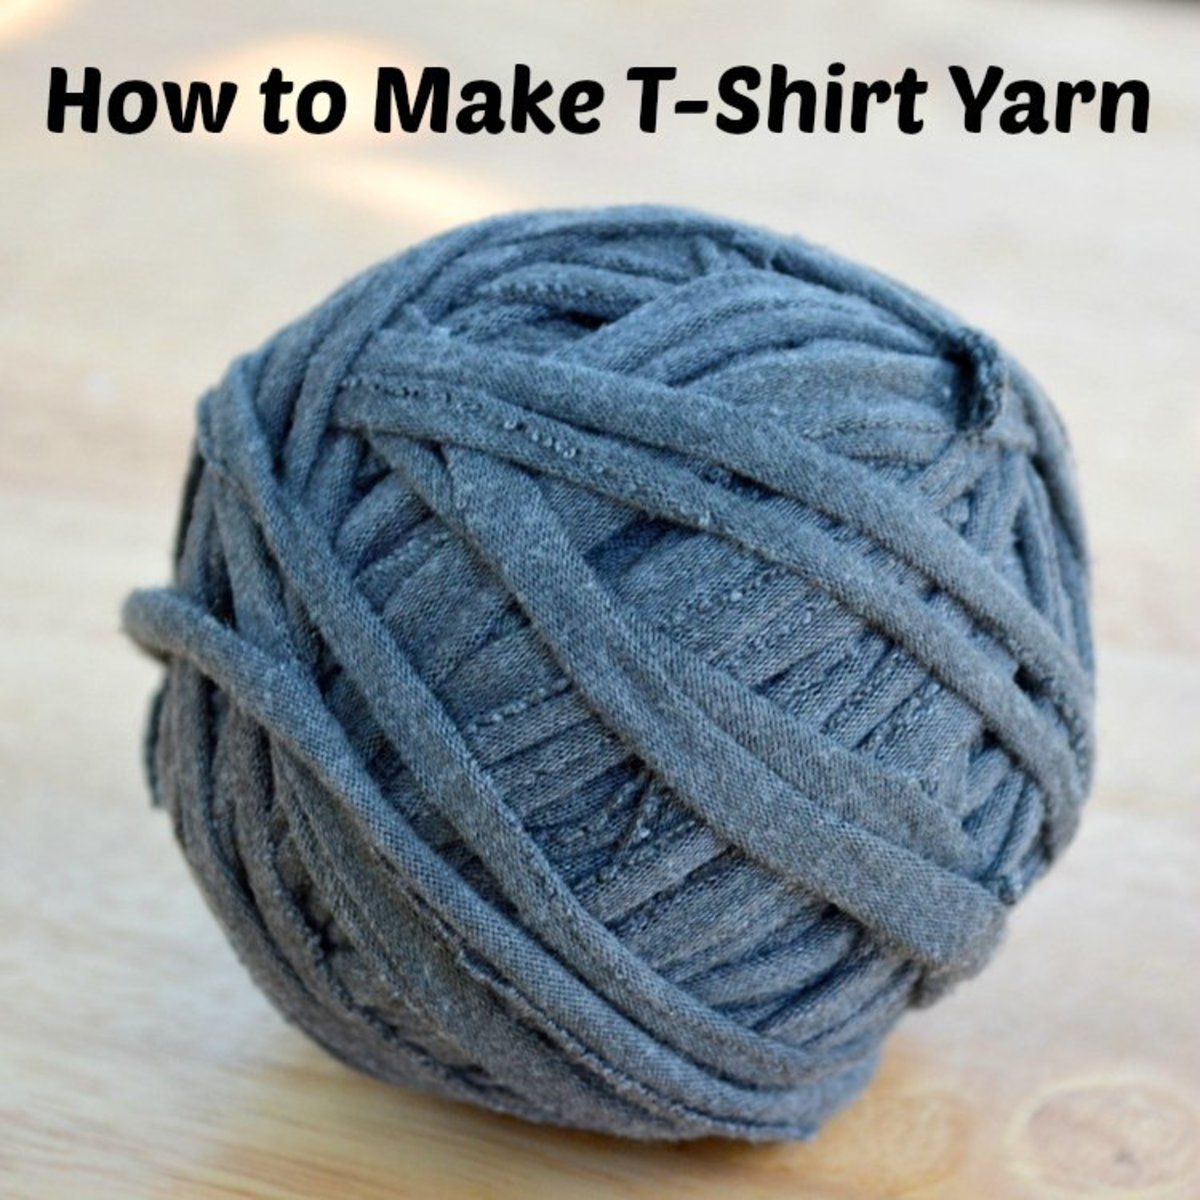 How to Make T-Shirt Yarn for Knitting or Crafts